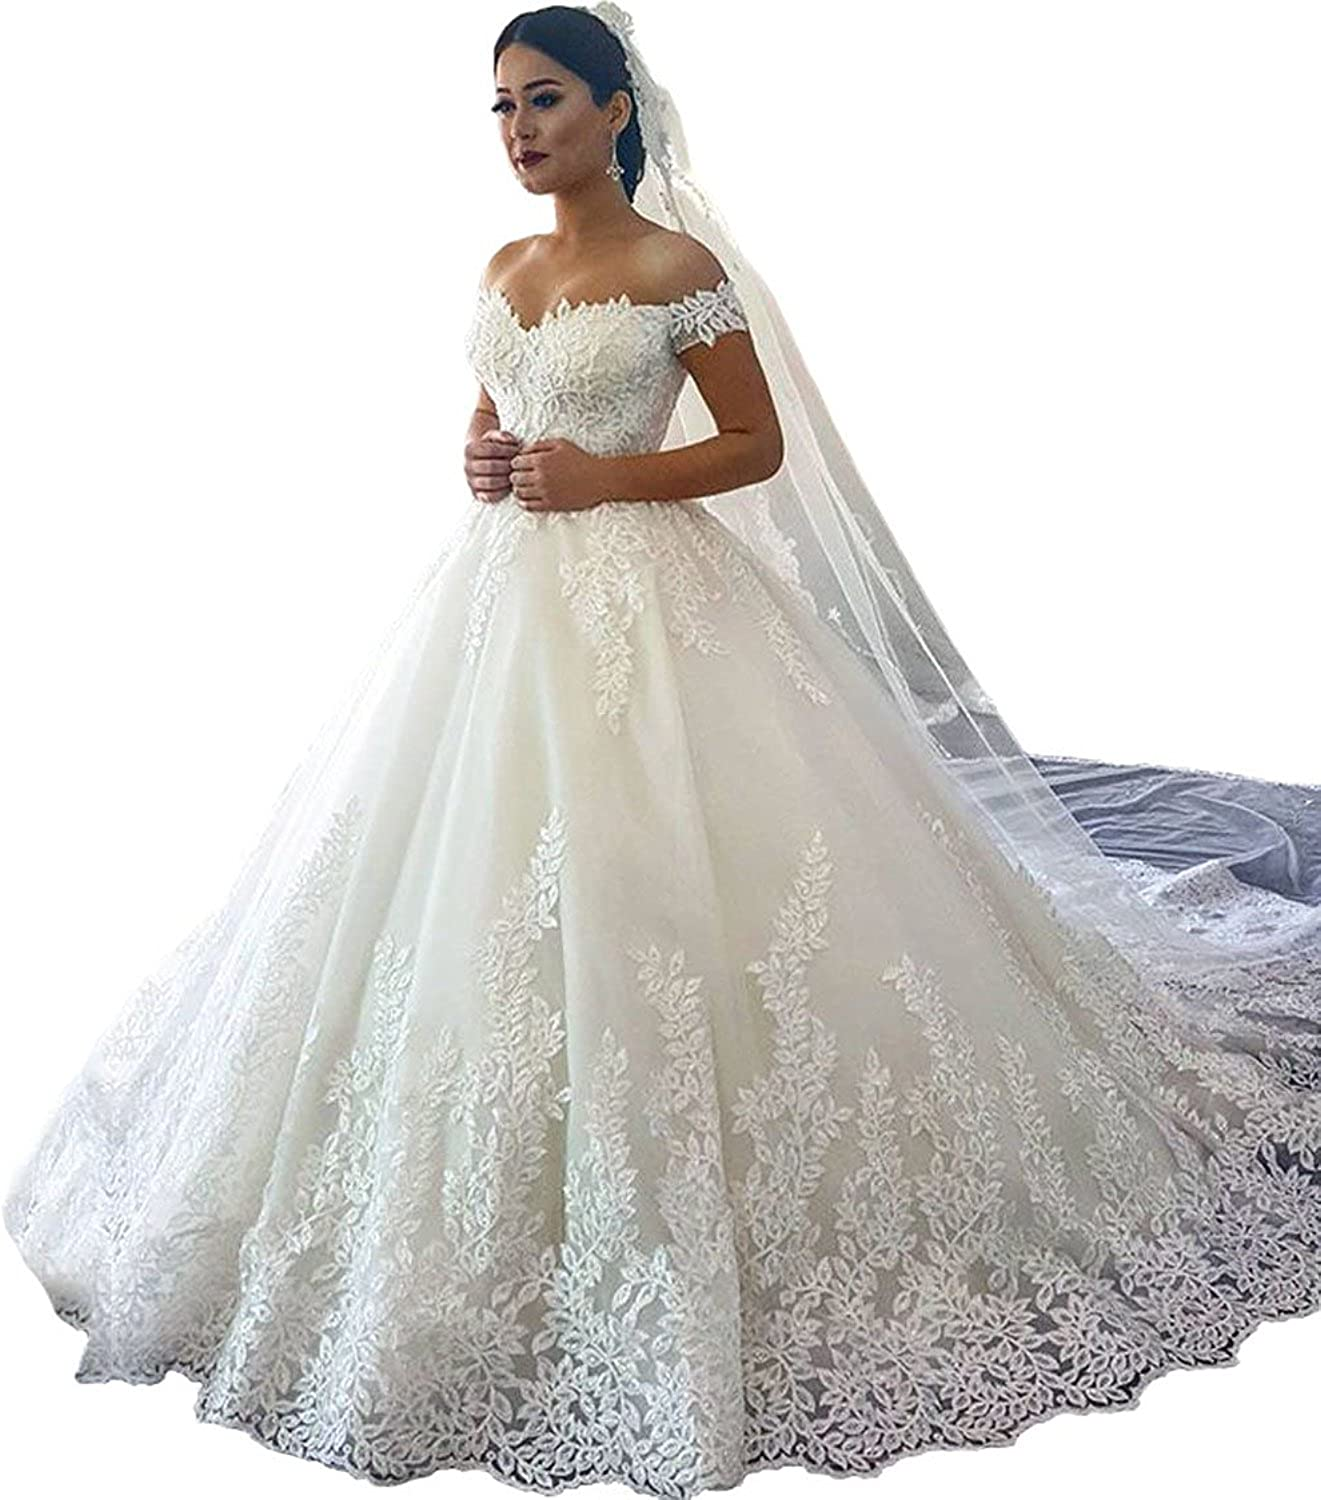 Gralre Women's Off Shoulder Sweetheart Lace Appliques Wedding Dresses A Line Bridal Gowns Long